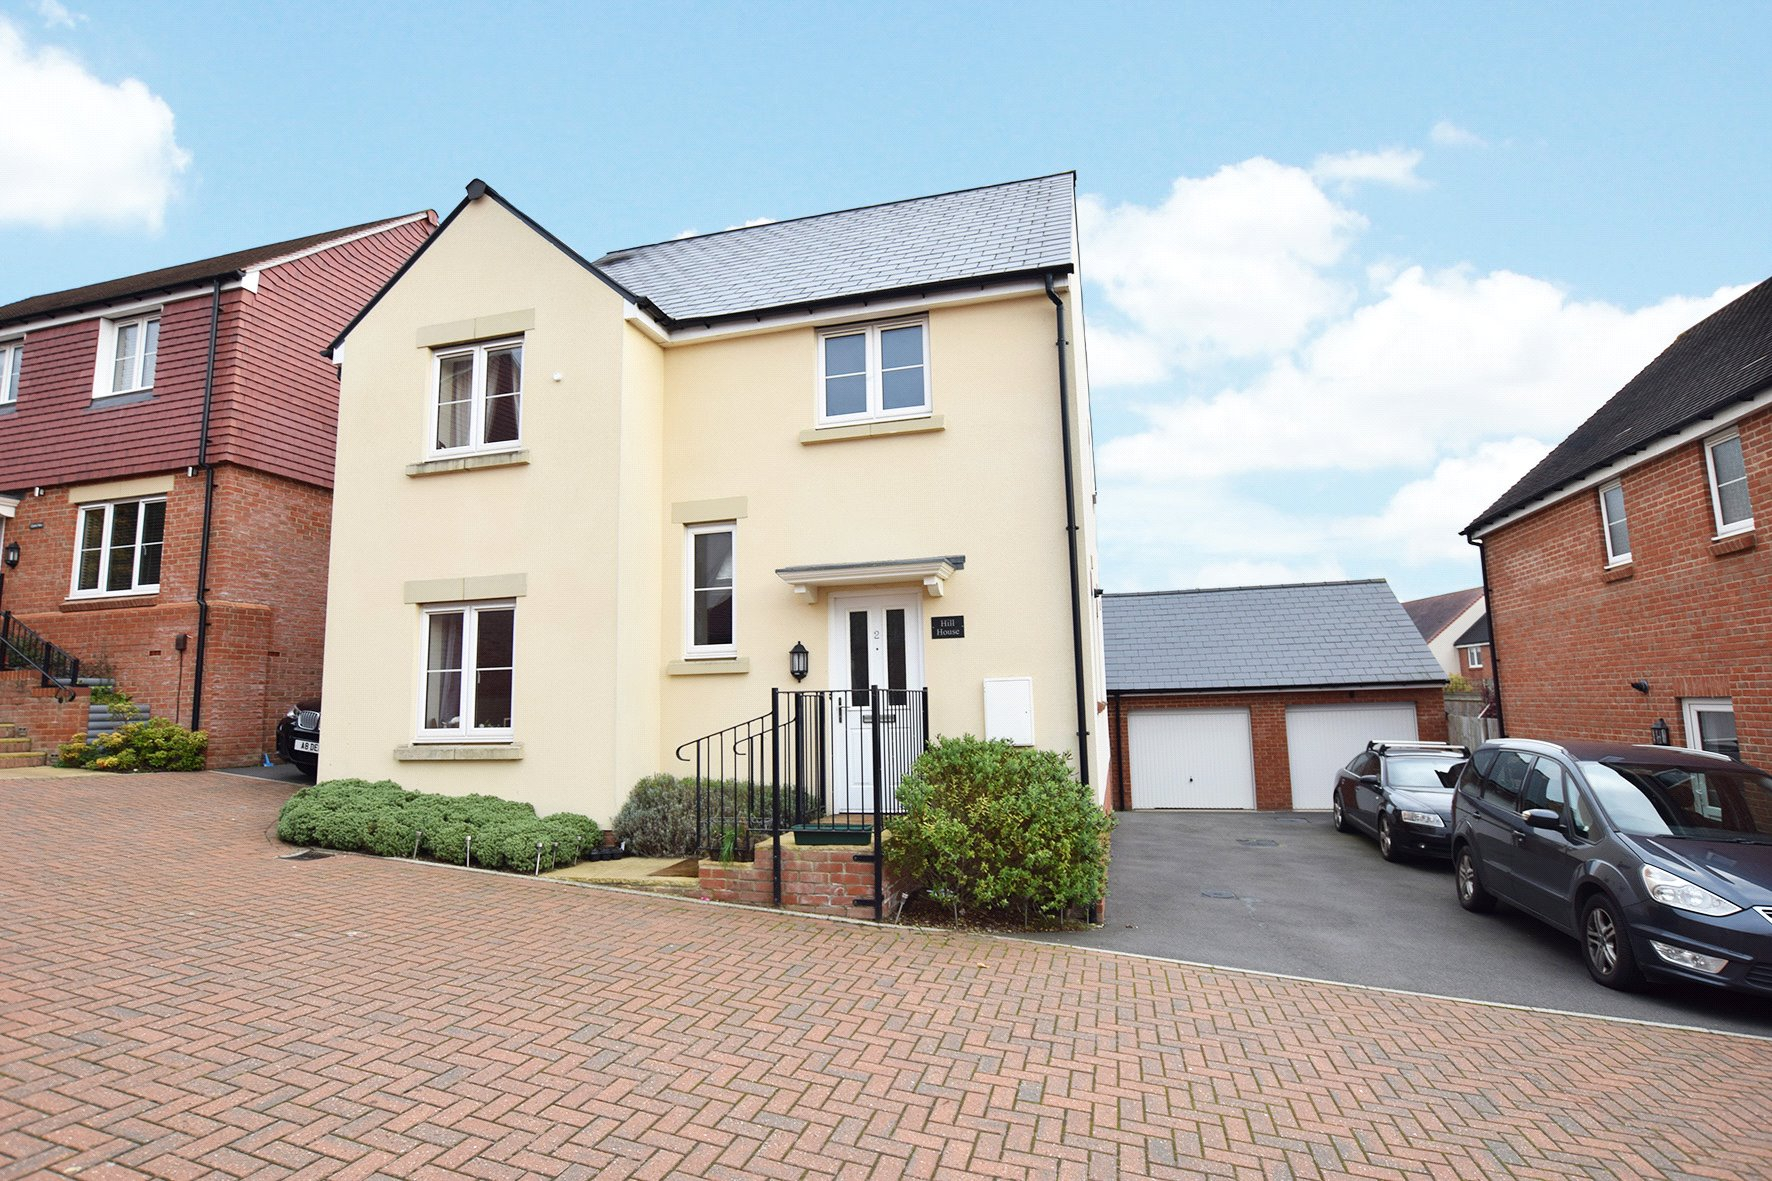 4 Bedrooms Detached House for sale in Spoonbill Rise, Bracknell, Berkshire, RG12